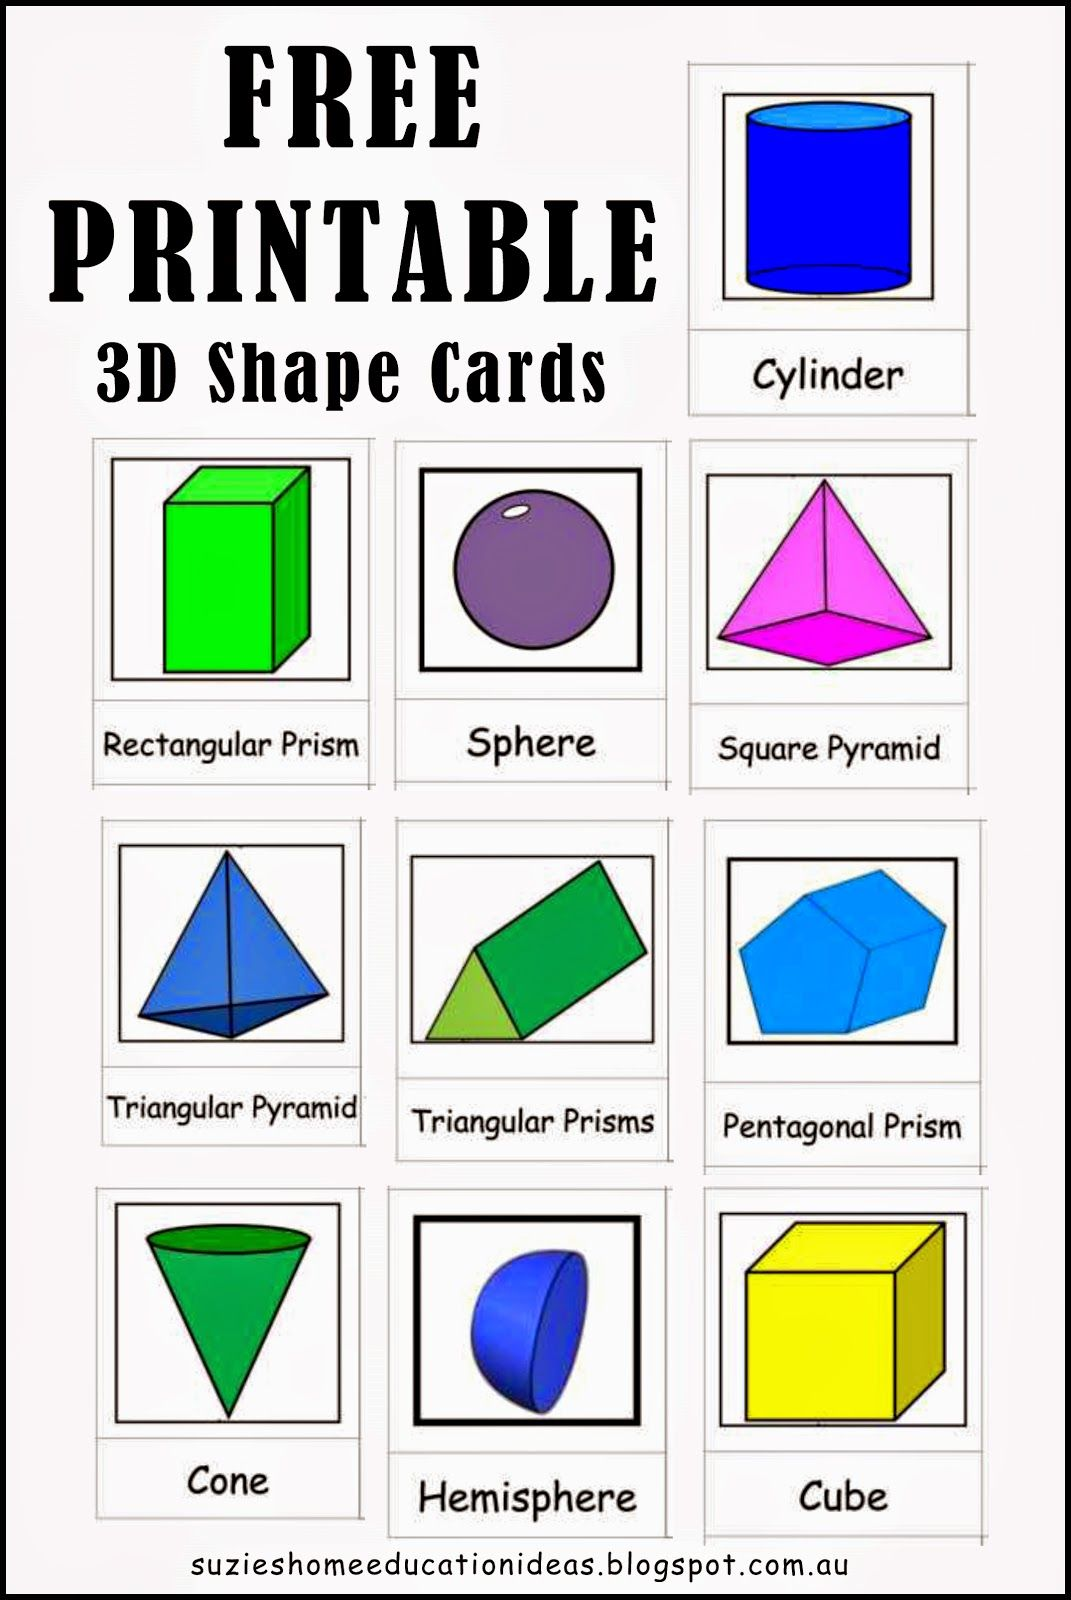 Worksheets List Of Images Shapes And The Names more at link 3 d shapes list of geometric 3d info my free printables namesshape